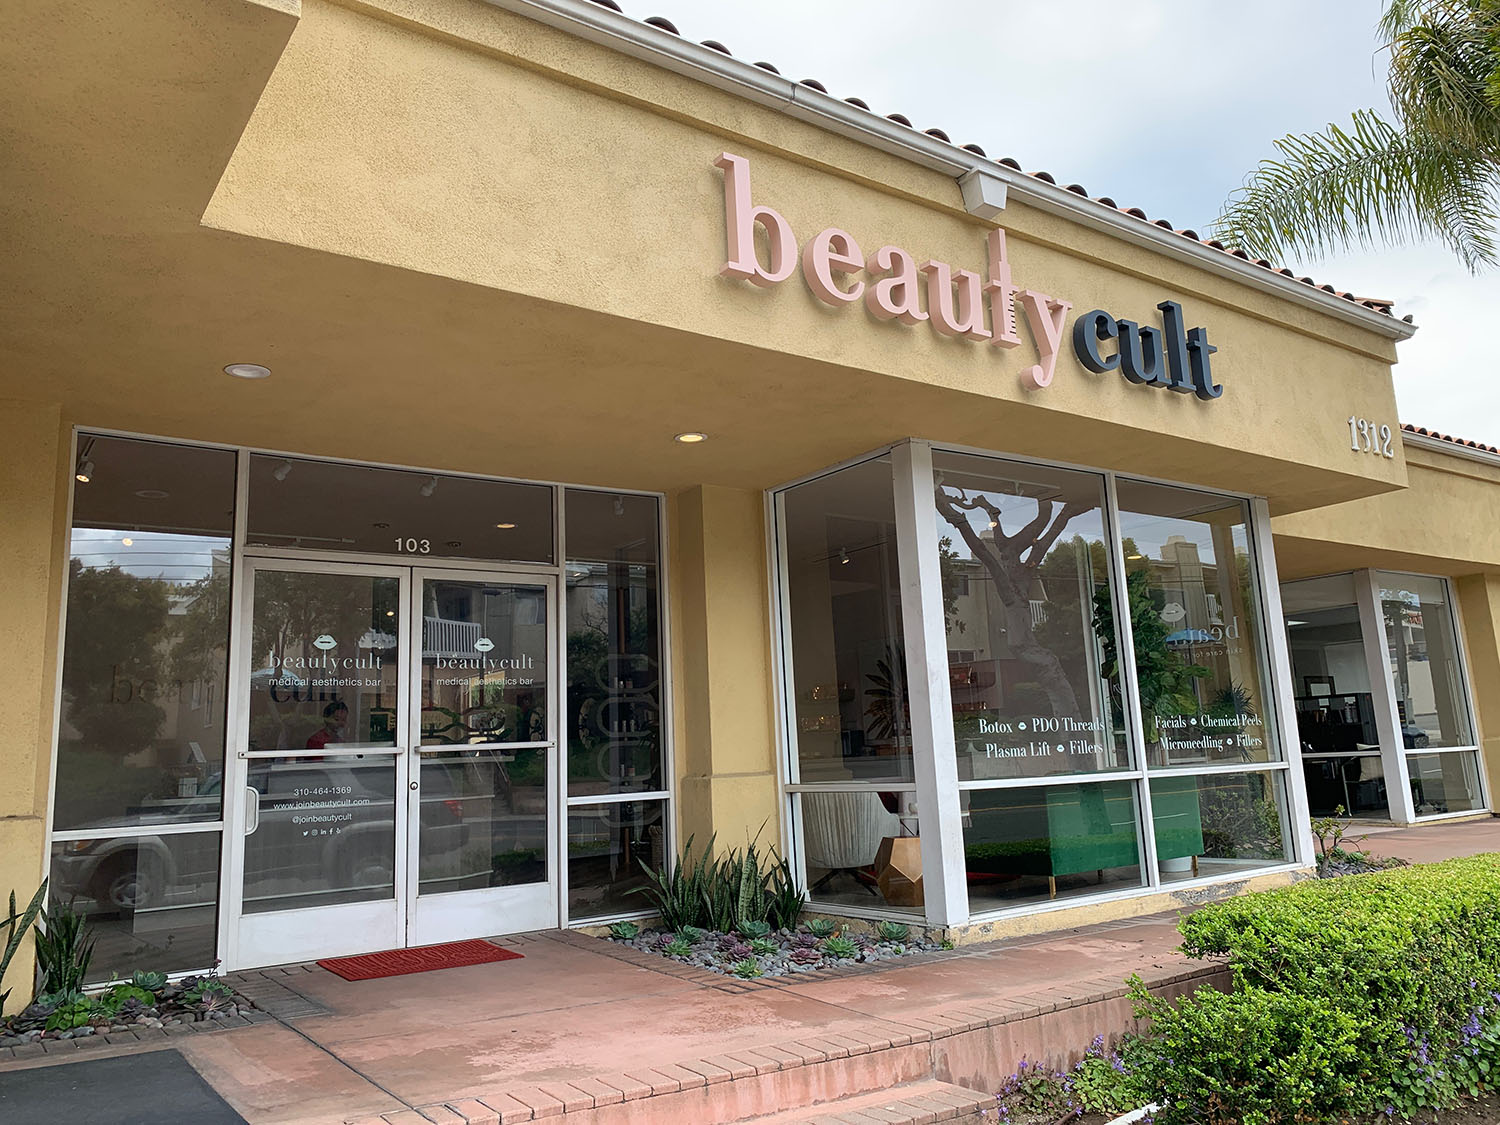 Beauty Cult opened in February 2019 and is located in Redondo Beach, California.